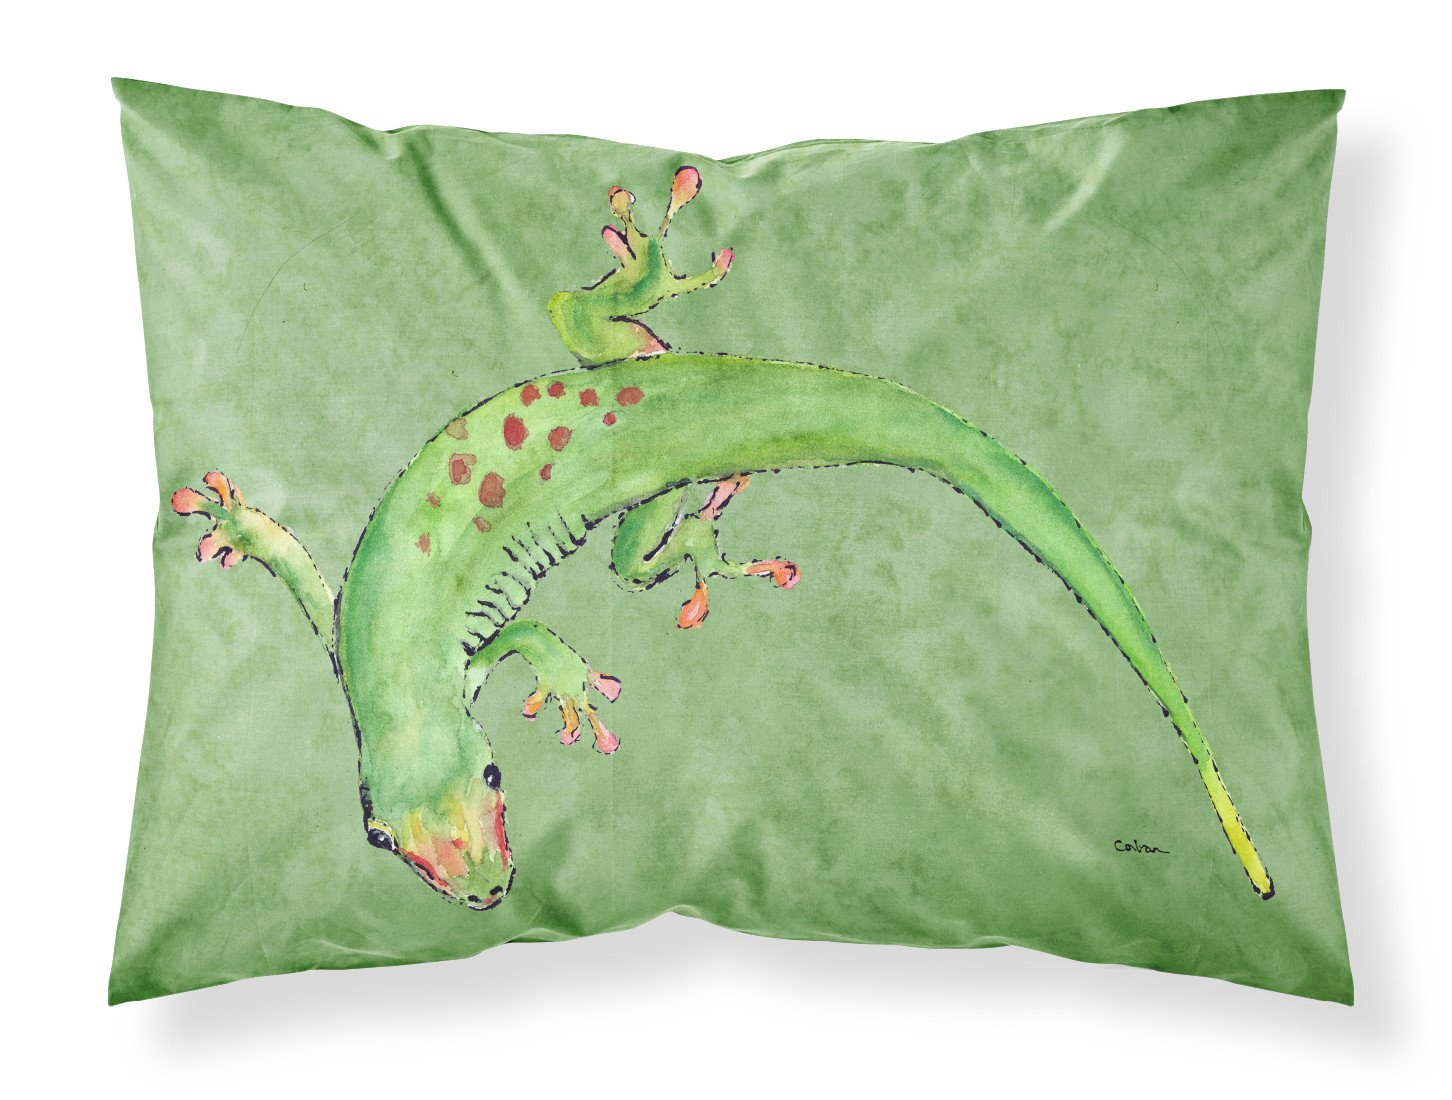 Buy this Gecko Moisture wicking Fabric standard pillowcase